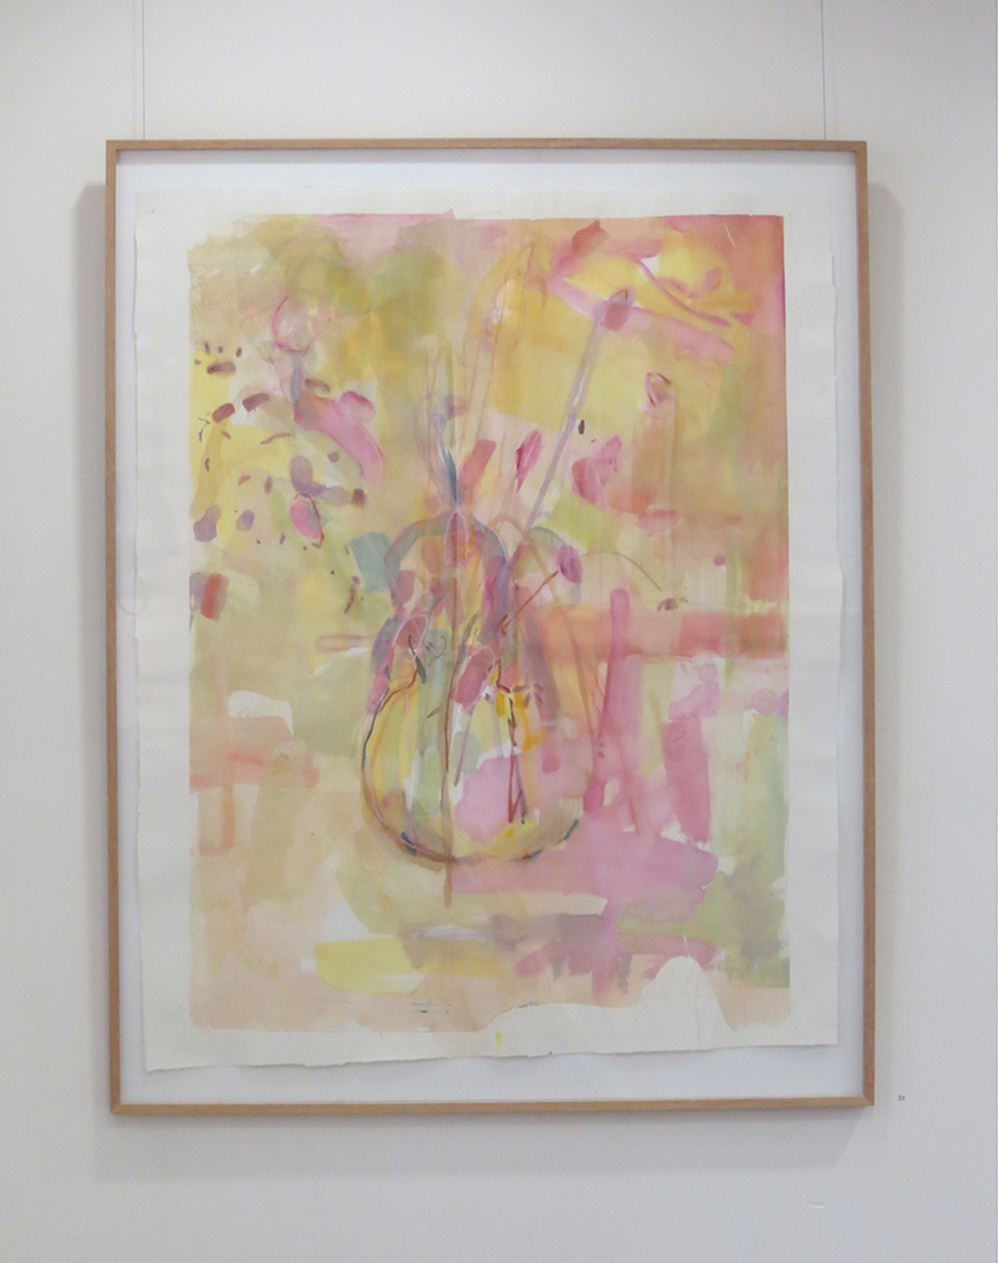 25. Jo Darvall, 'Still Life Floating #3', 2015, Watercolour chine-collé, 137 x 126cm, $4,800